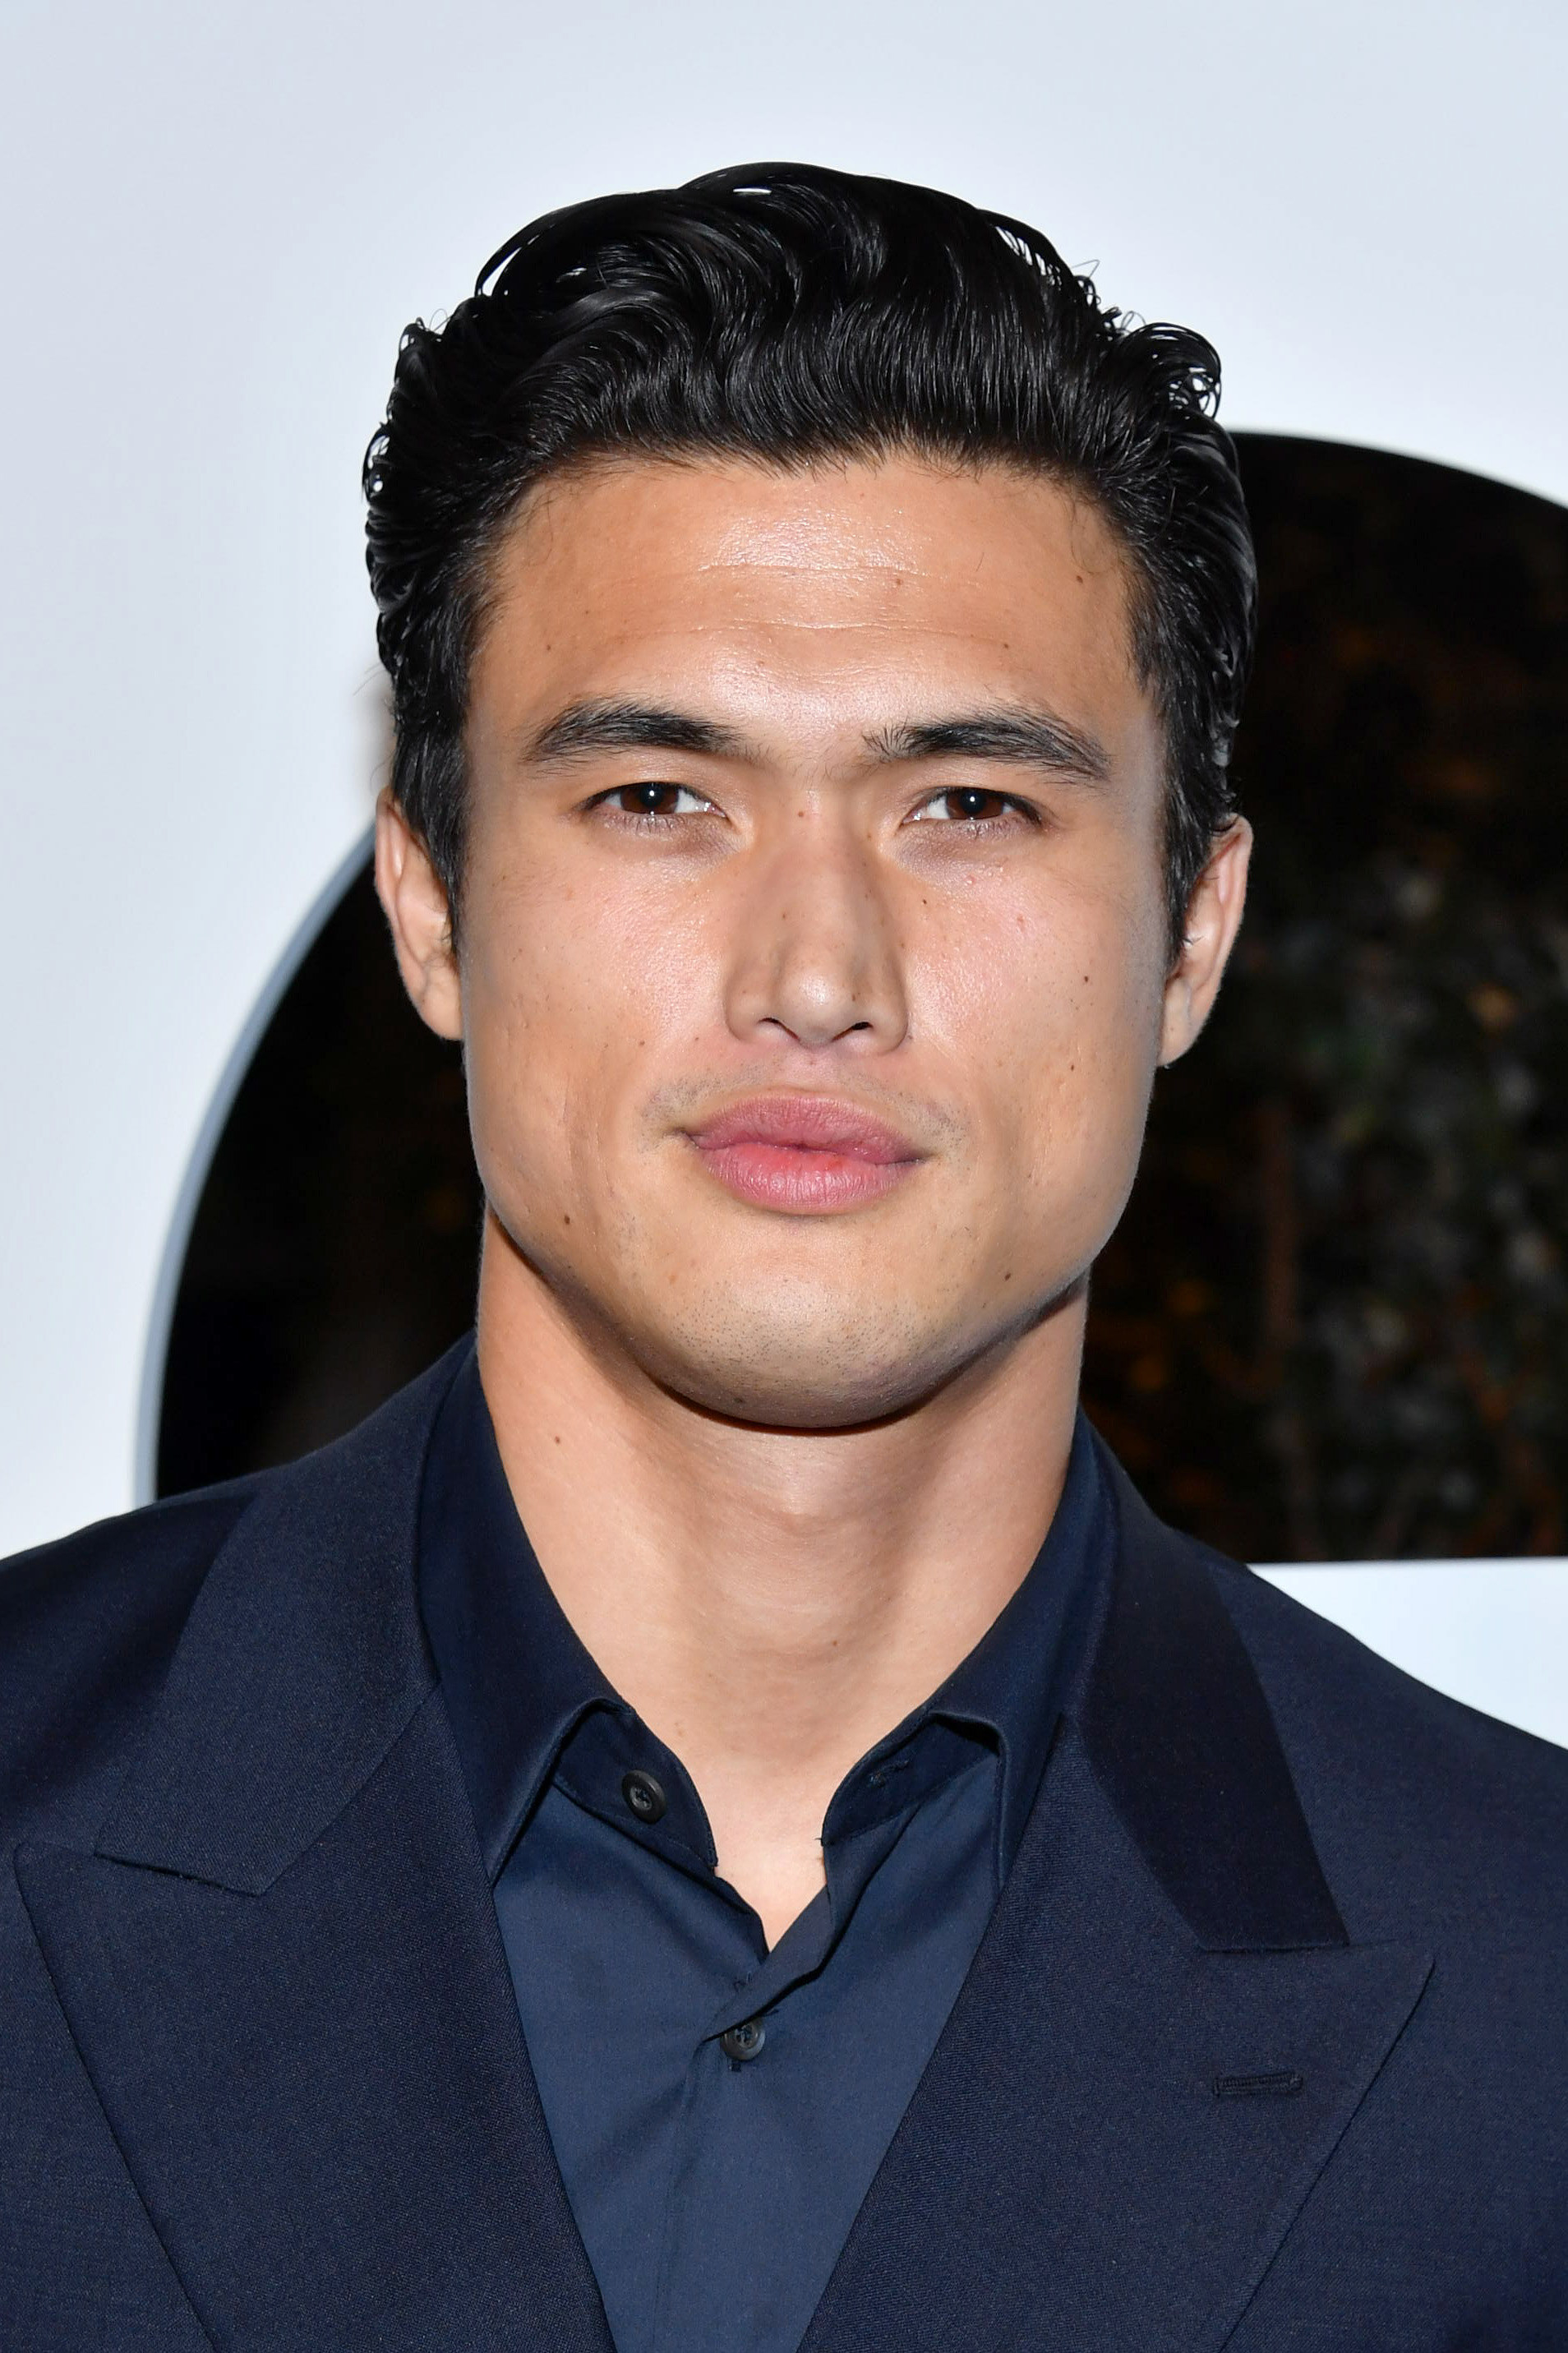 Charles Melton smiles in a navy suit